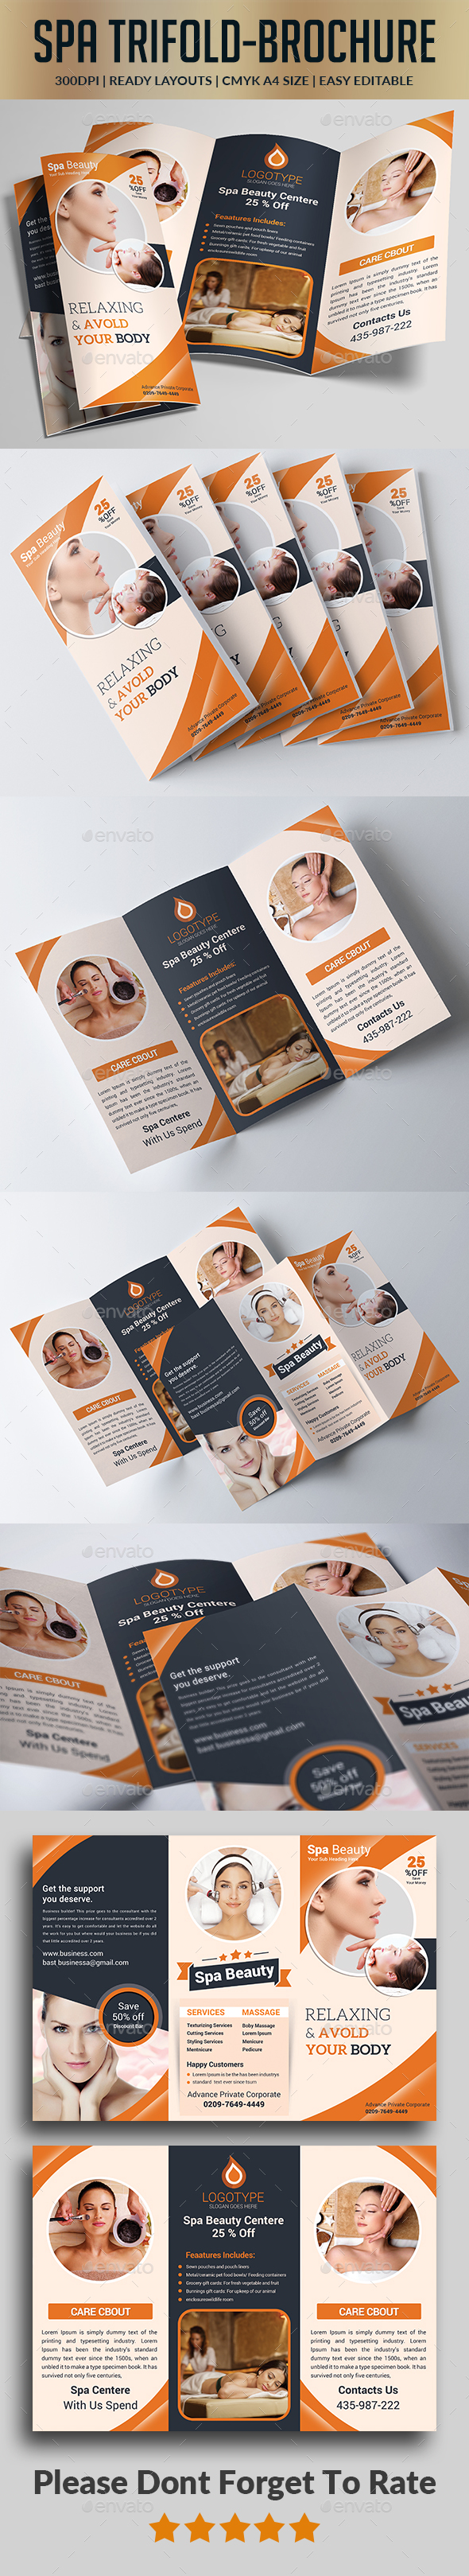 Spa Trifold Brochure - Informational Brochures